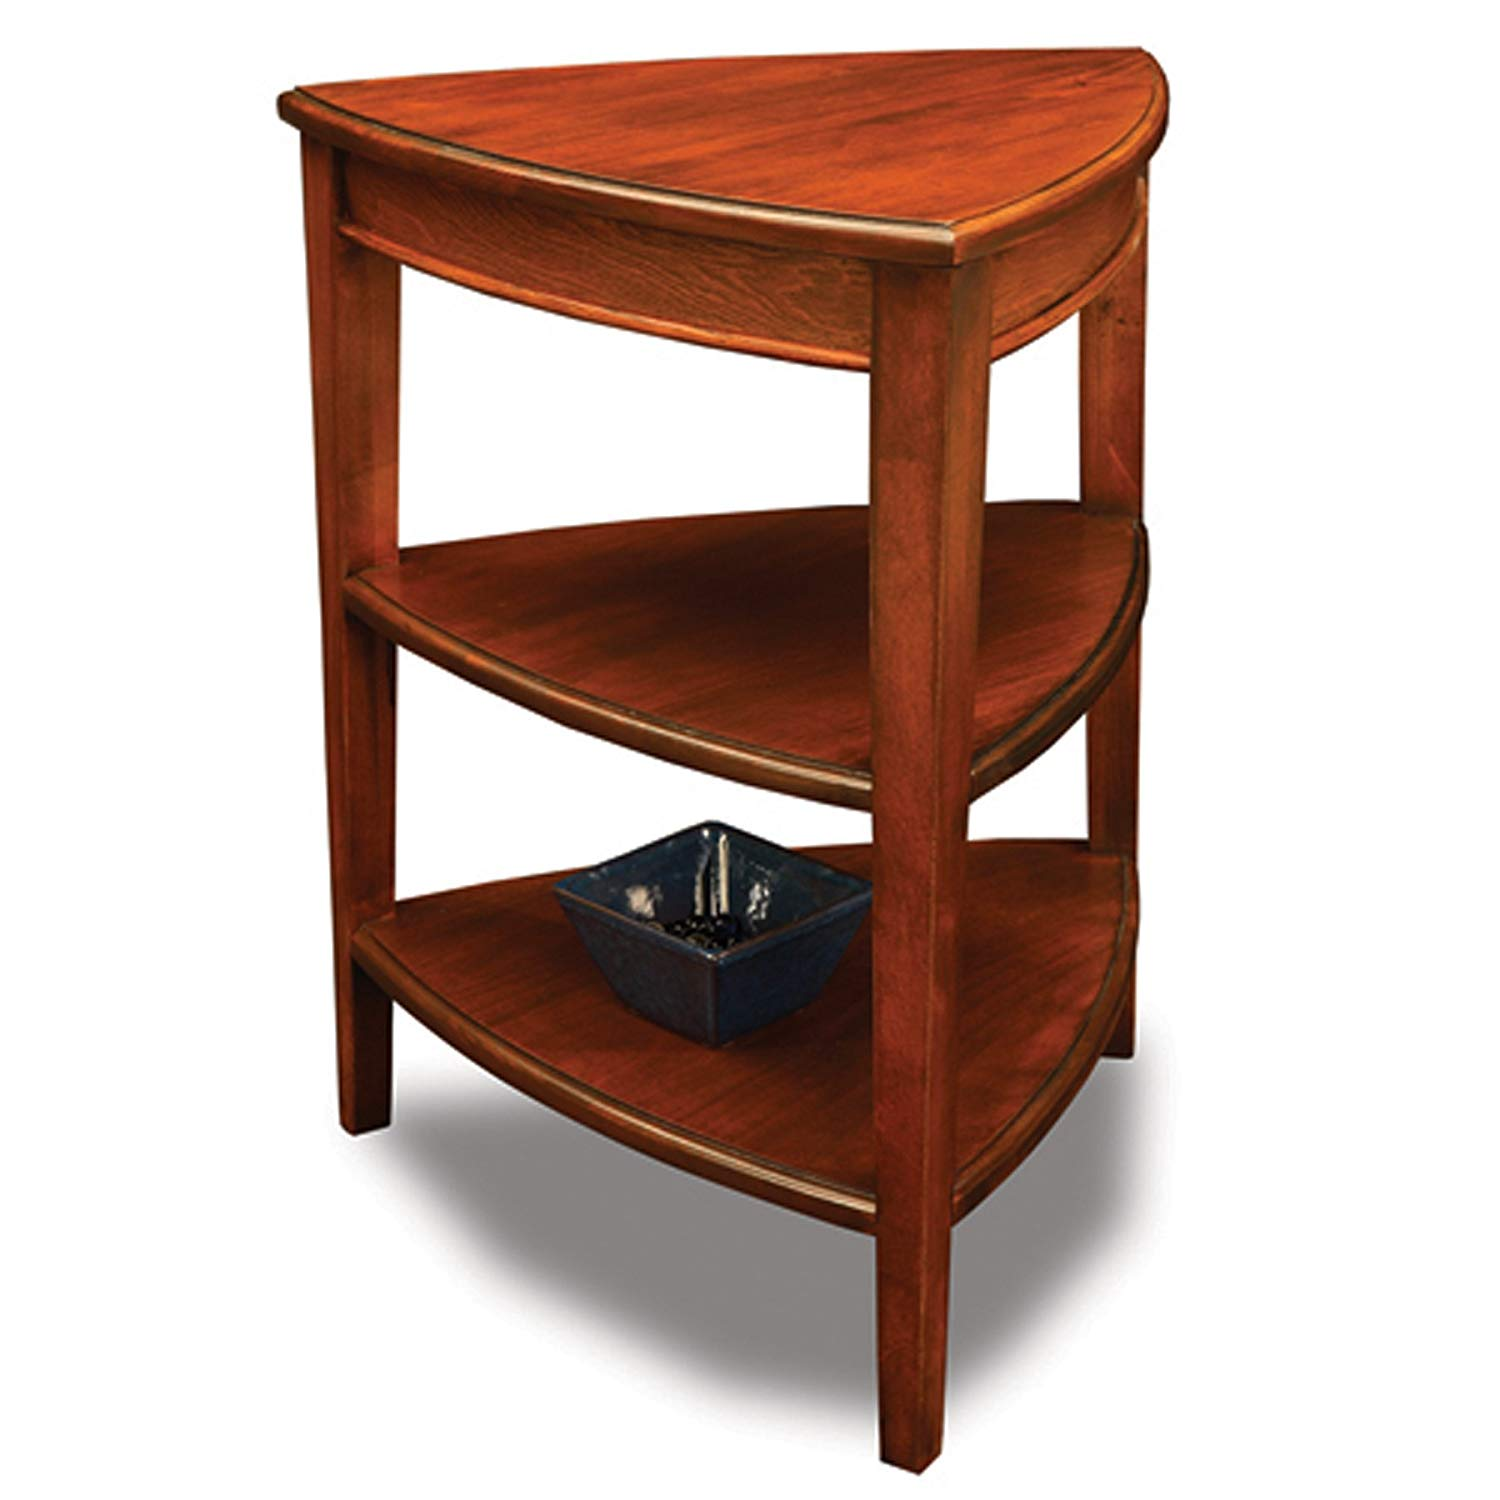 leick shield tier corner accent table kitchen dining shelf wood grundtal dressing vegetable storage rack ikea bookshelves unit shaped wall vintage shelves billy bookcase computer